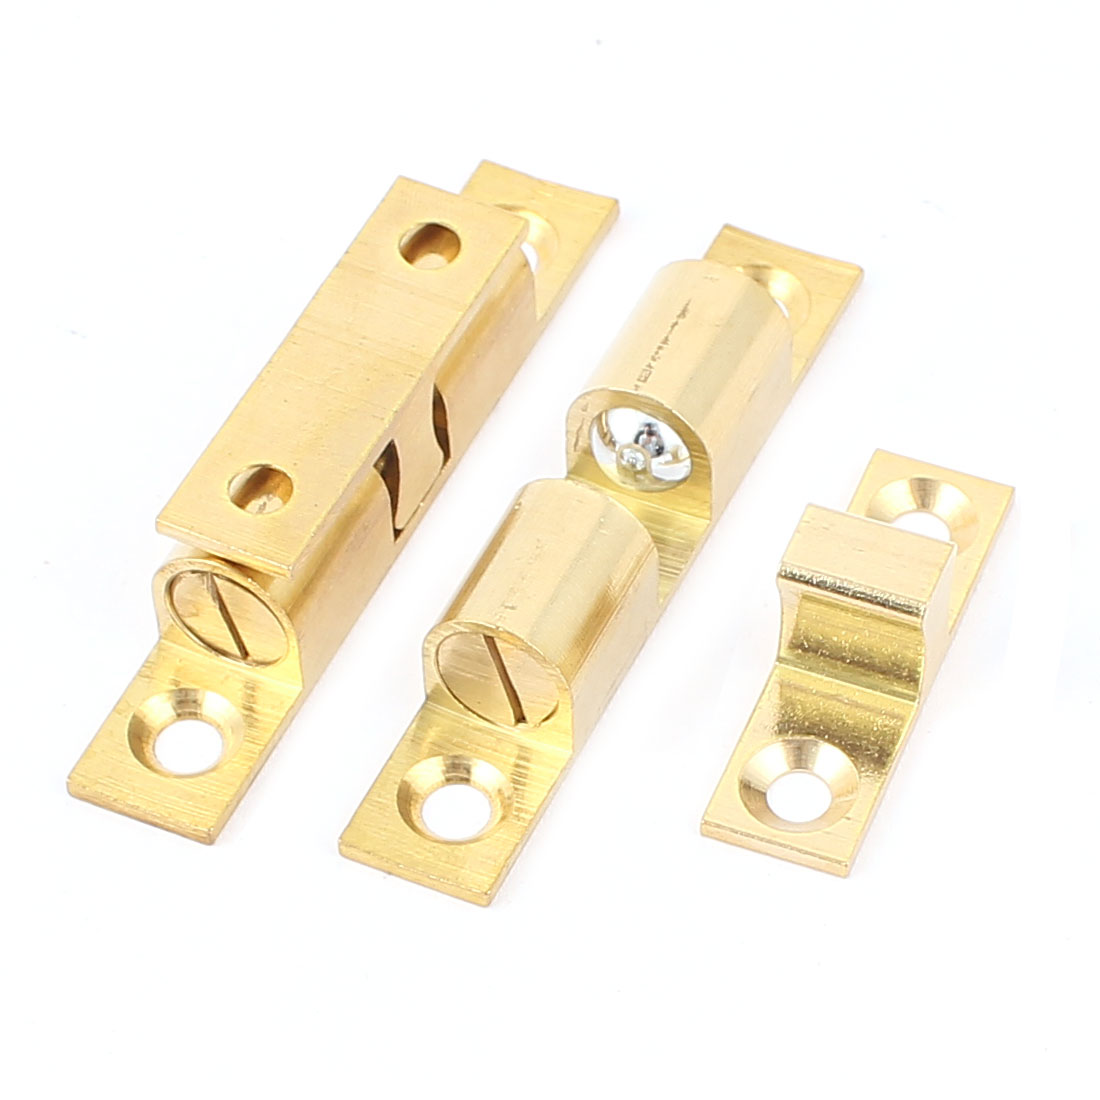 2 Pcs Brass Cabinet Door Double Ball Catch Hardware 60mm Long